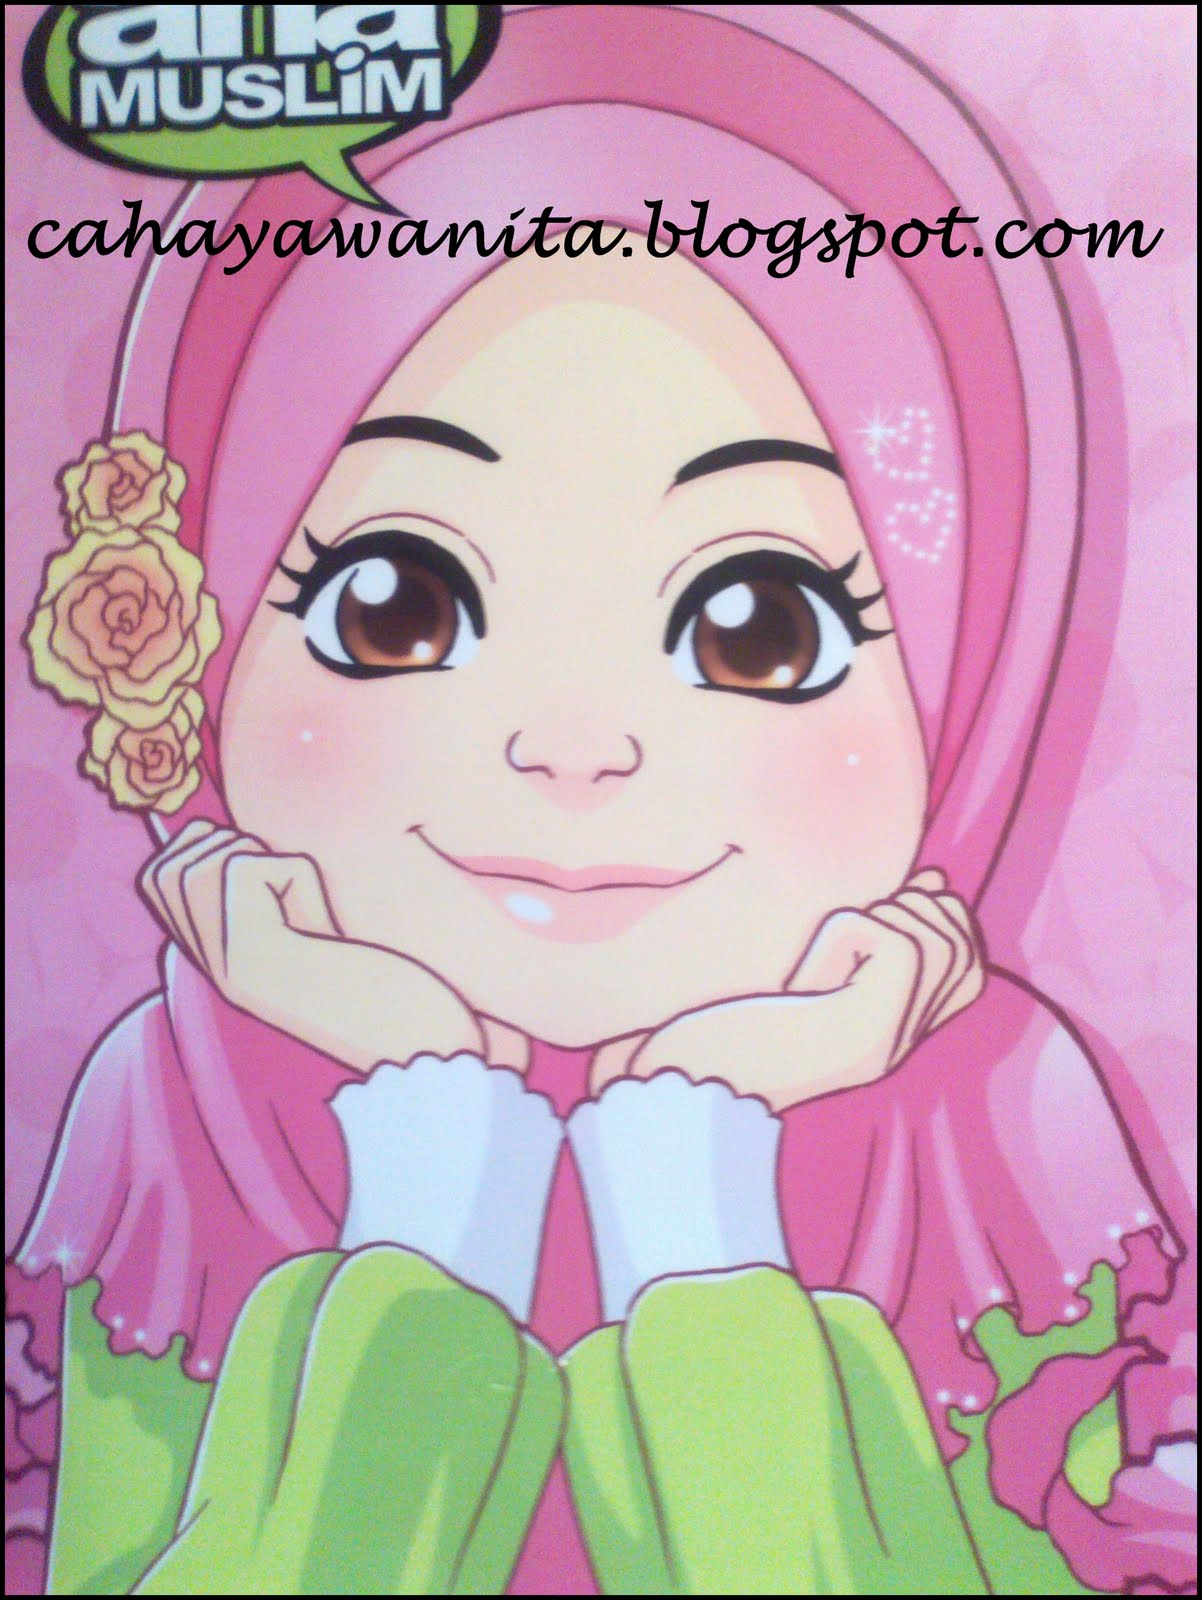 Wallpaper Android Kartun Muslimah  impremedia.net